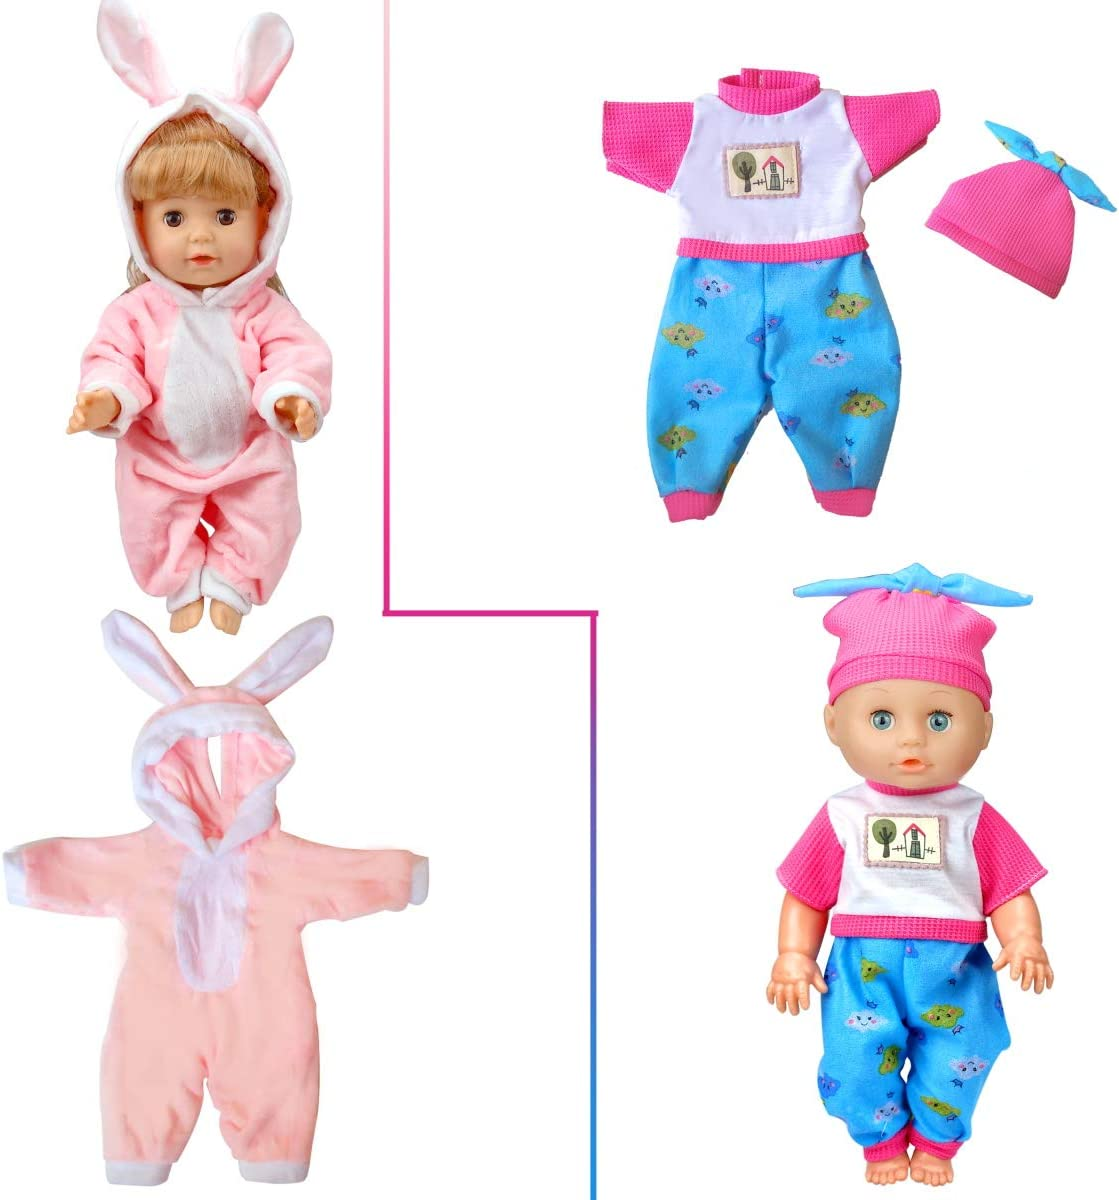 Amazon.com: WONDOLL 8-Sets Baby-Doll-Clothes for 12 inch Baby-Alive-Dolls  Handmade Clothing Lovely Hat Dress and Outfits Accessories Birthday for  Little Girl: Toys & Games